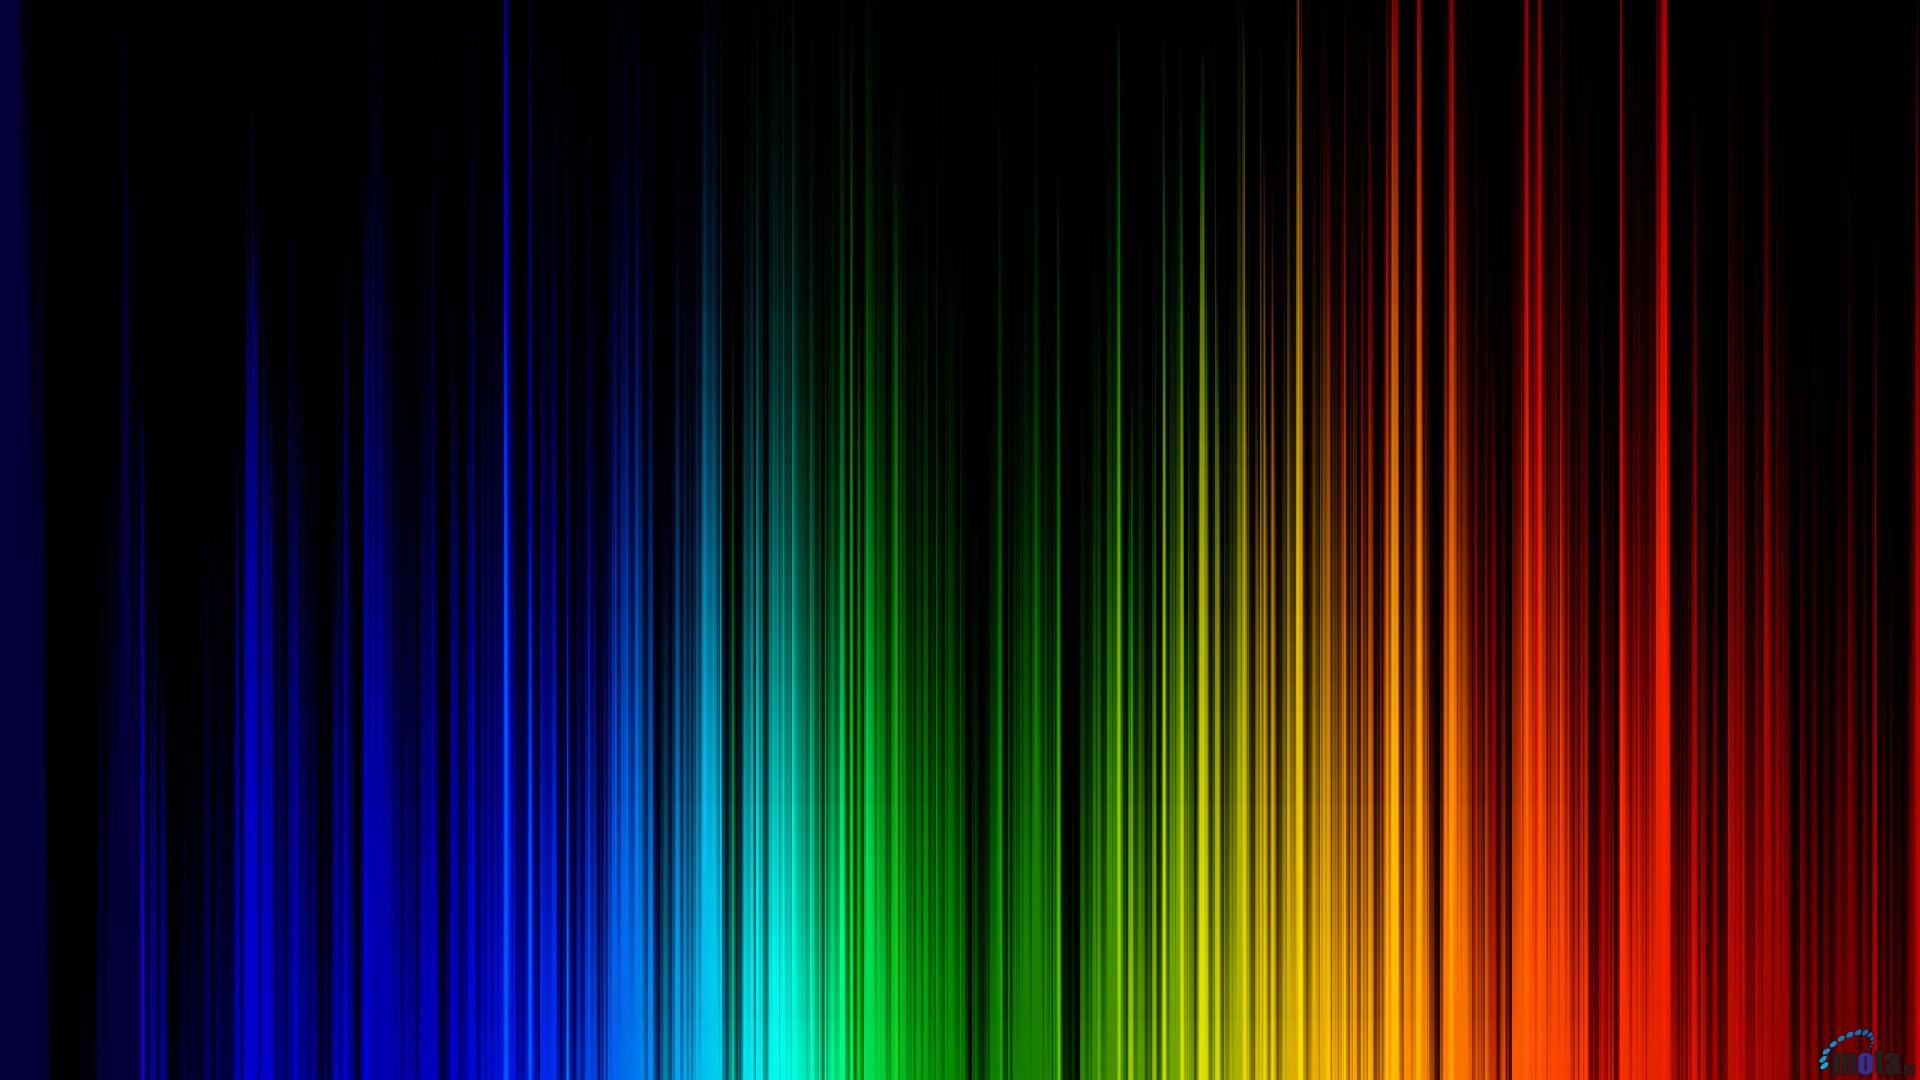 Free Download Rainbow Colors Background Wallpaper 1920x1080